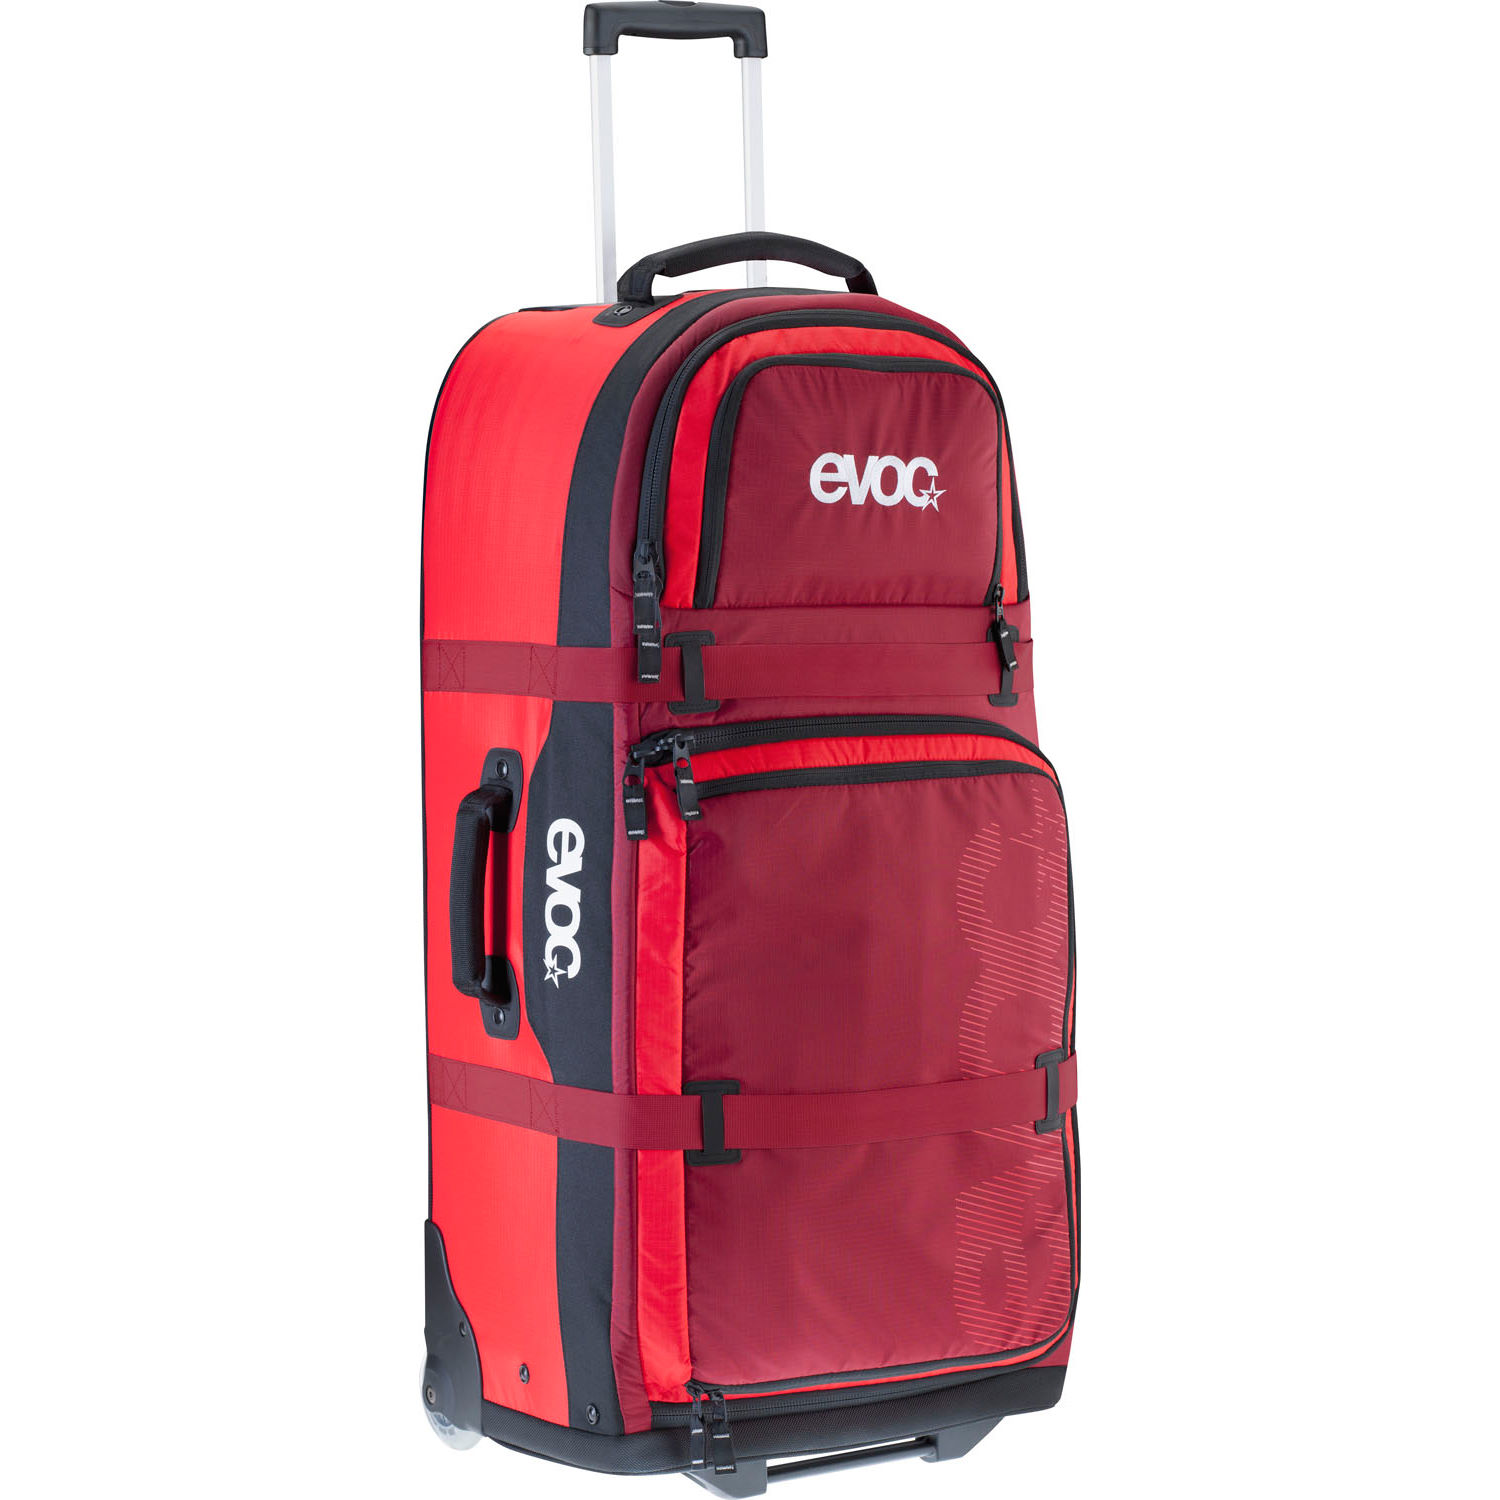 Evoc World Traveller Bag